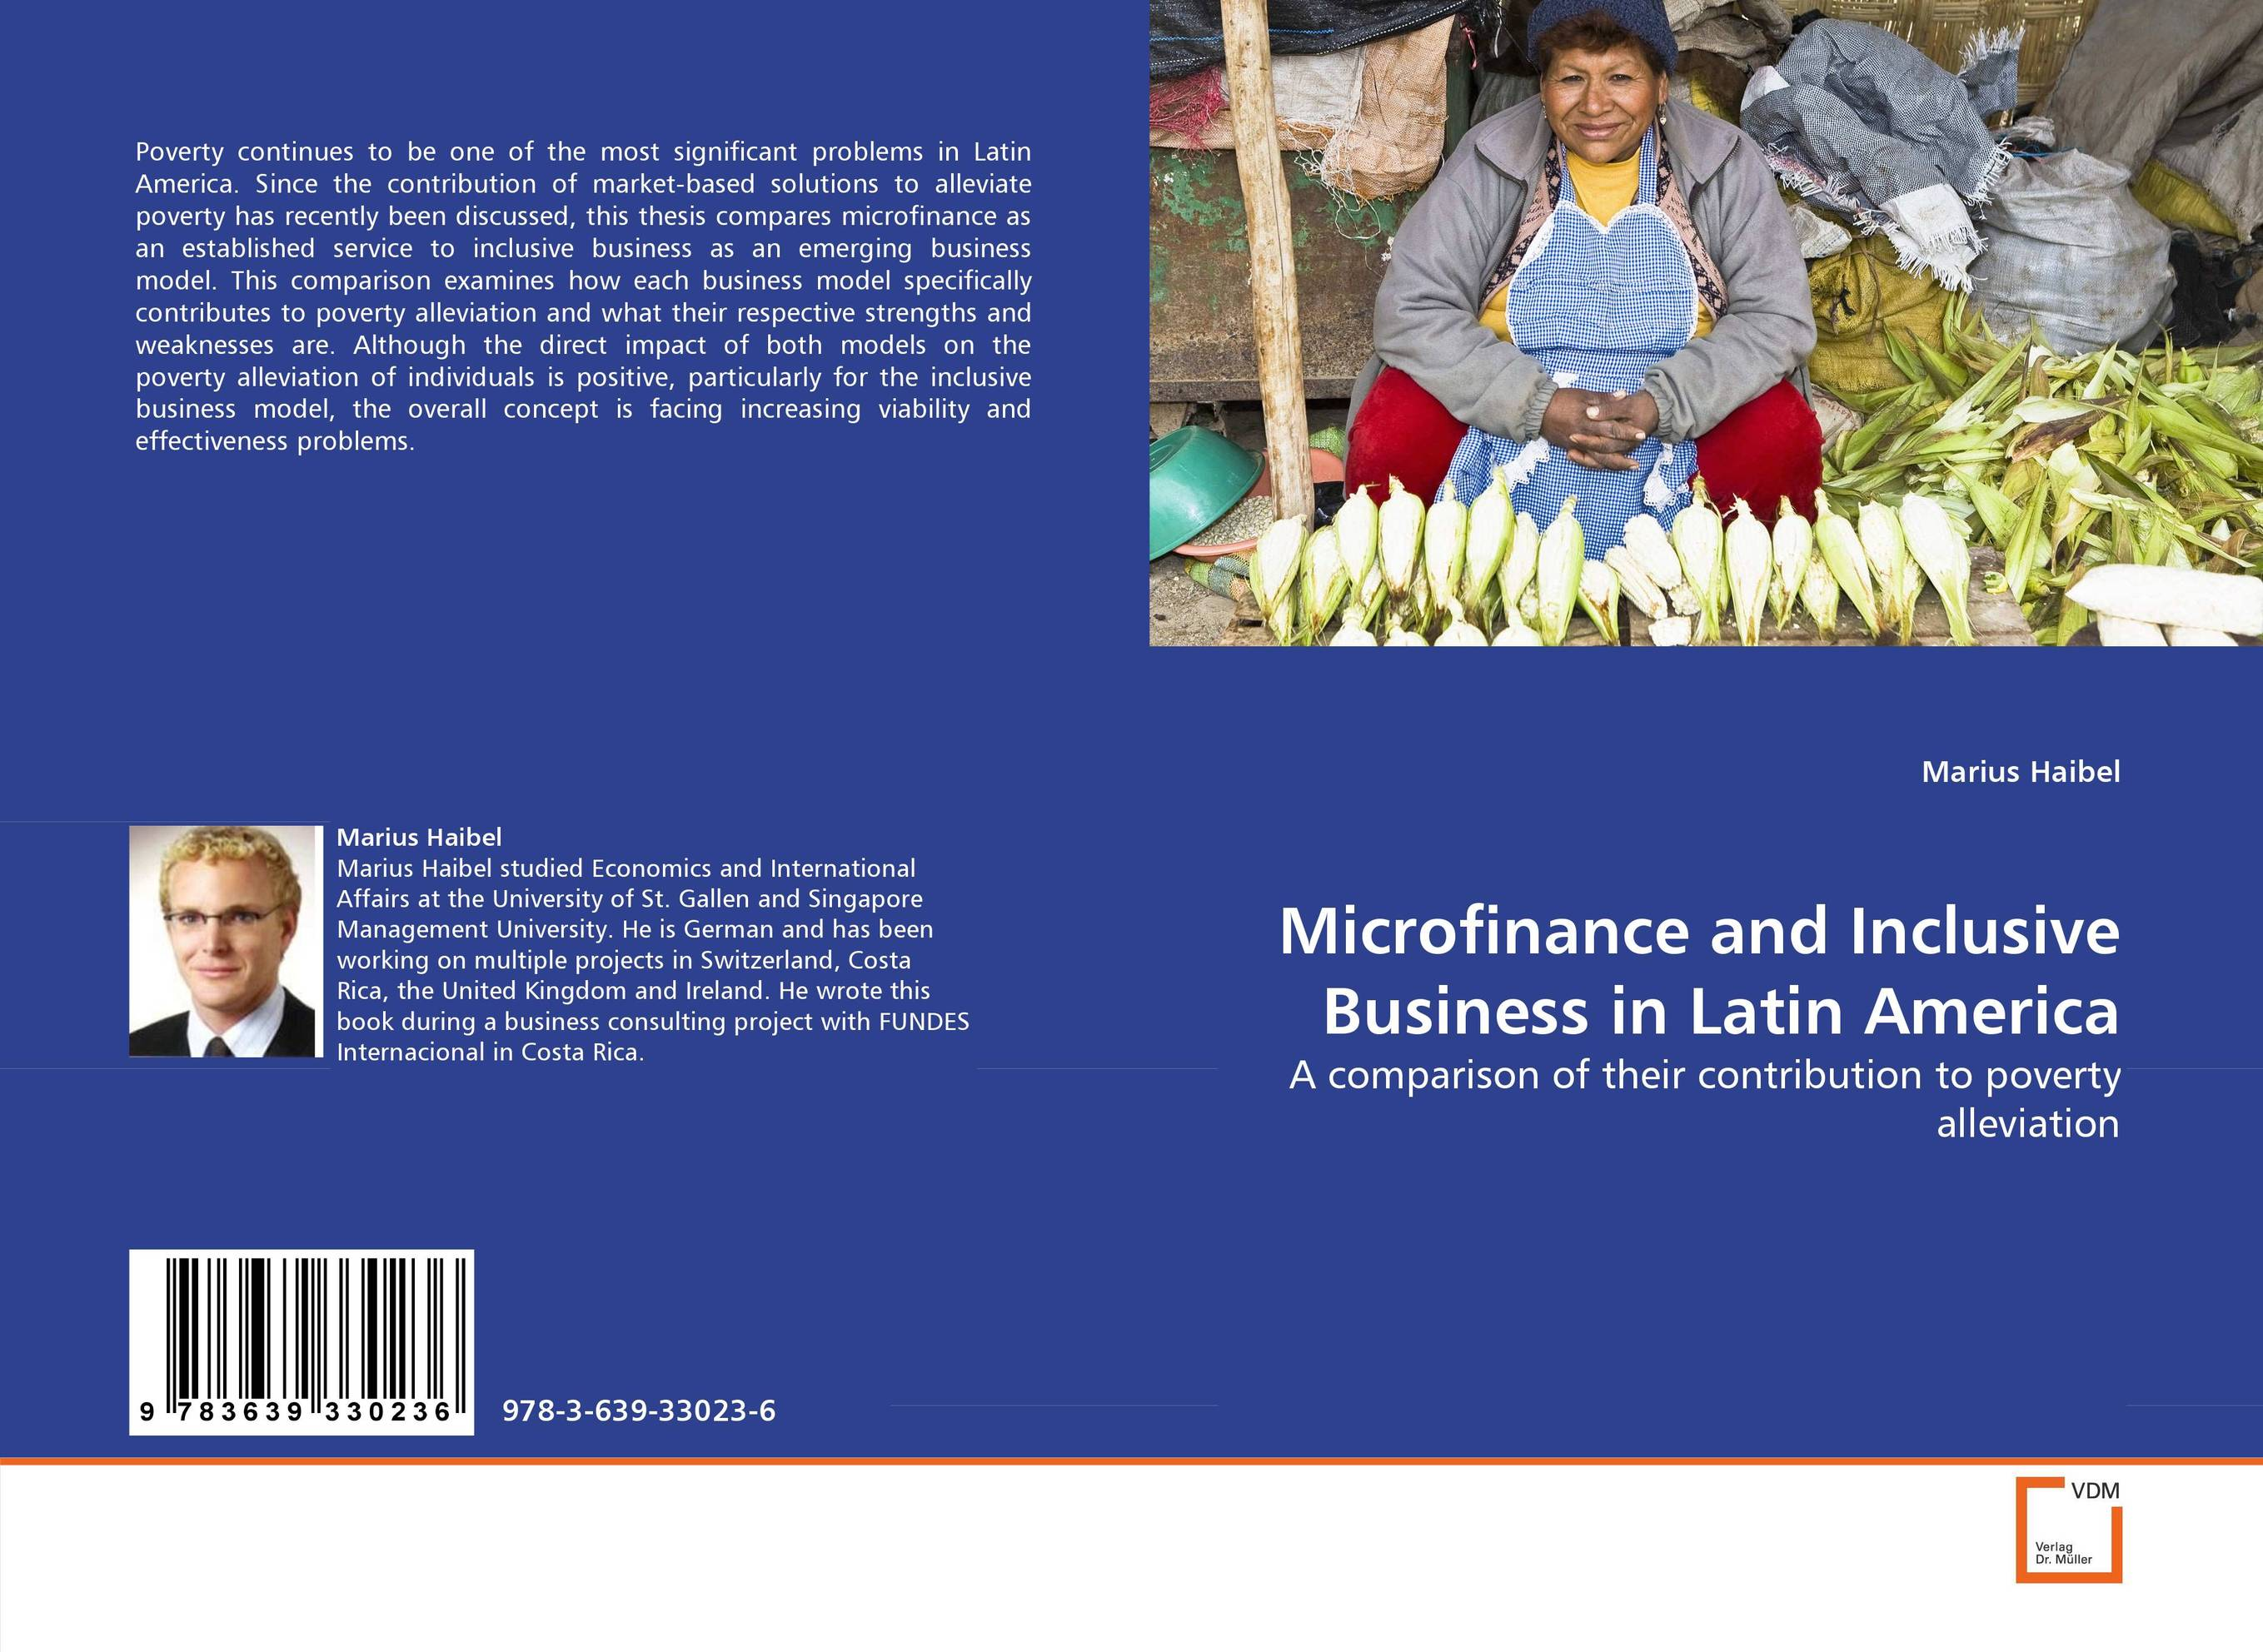 Microfinance and Inclusive Business in Latin America marc lane j the mission driven venture business solutions to the world s most vexing social problems